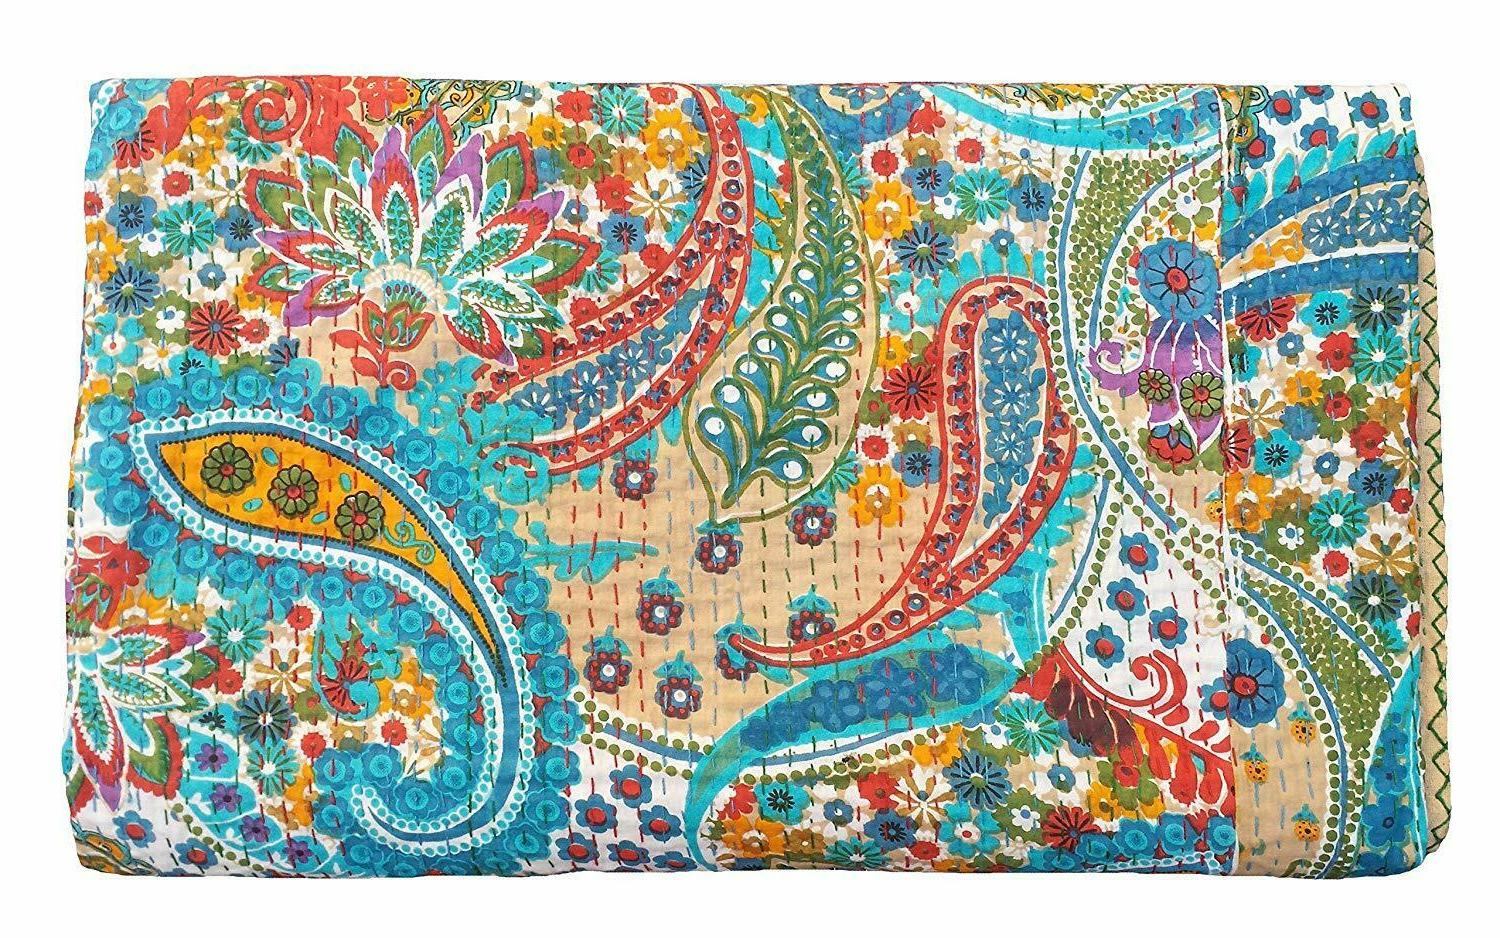 Paisley Print King Size Kantha Quilt , Blanket, Bed Cover,be